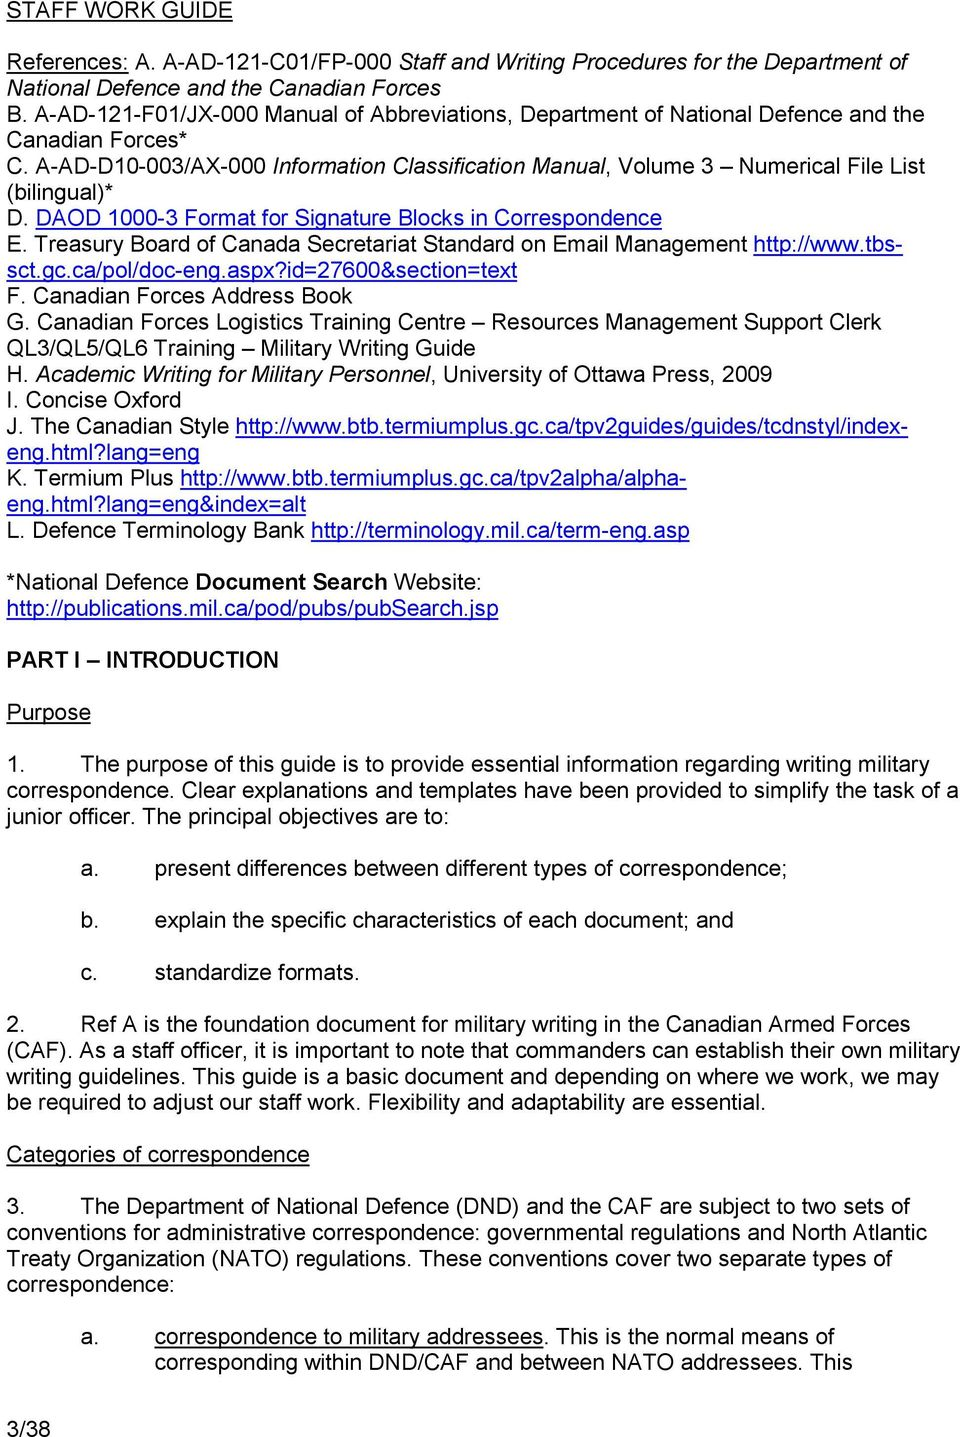 staff work guide. canadian armed forces junior officer development